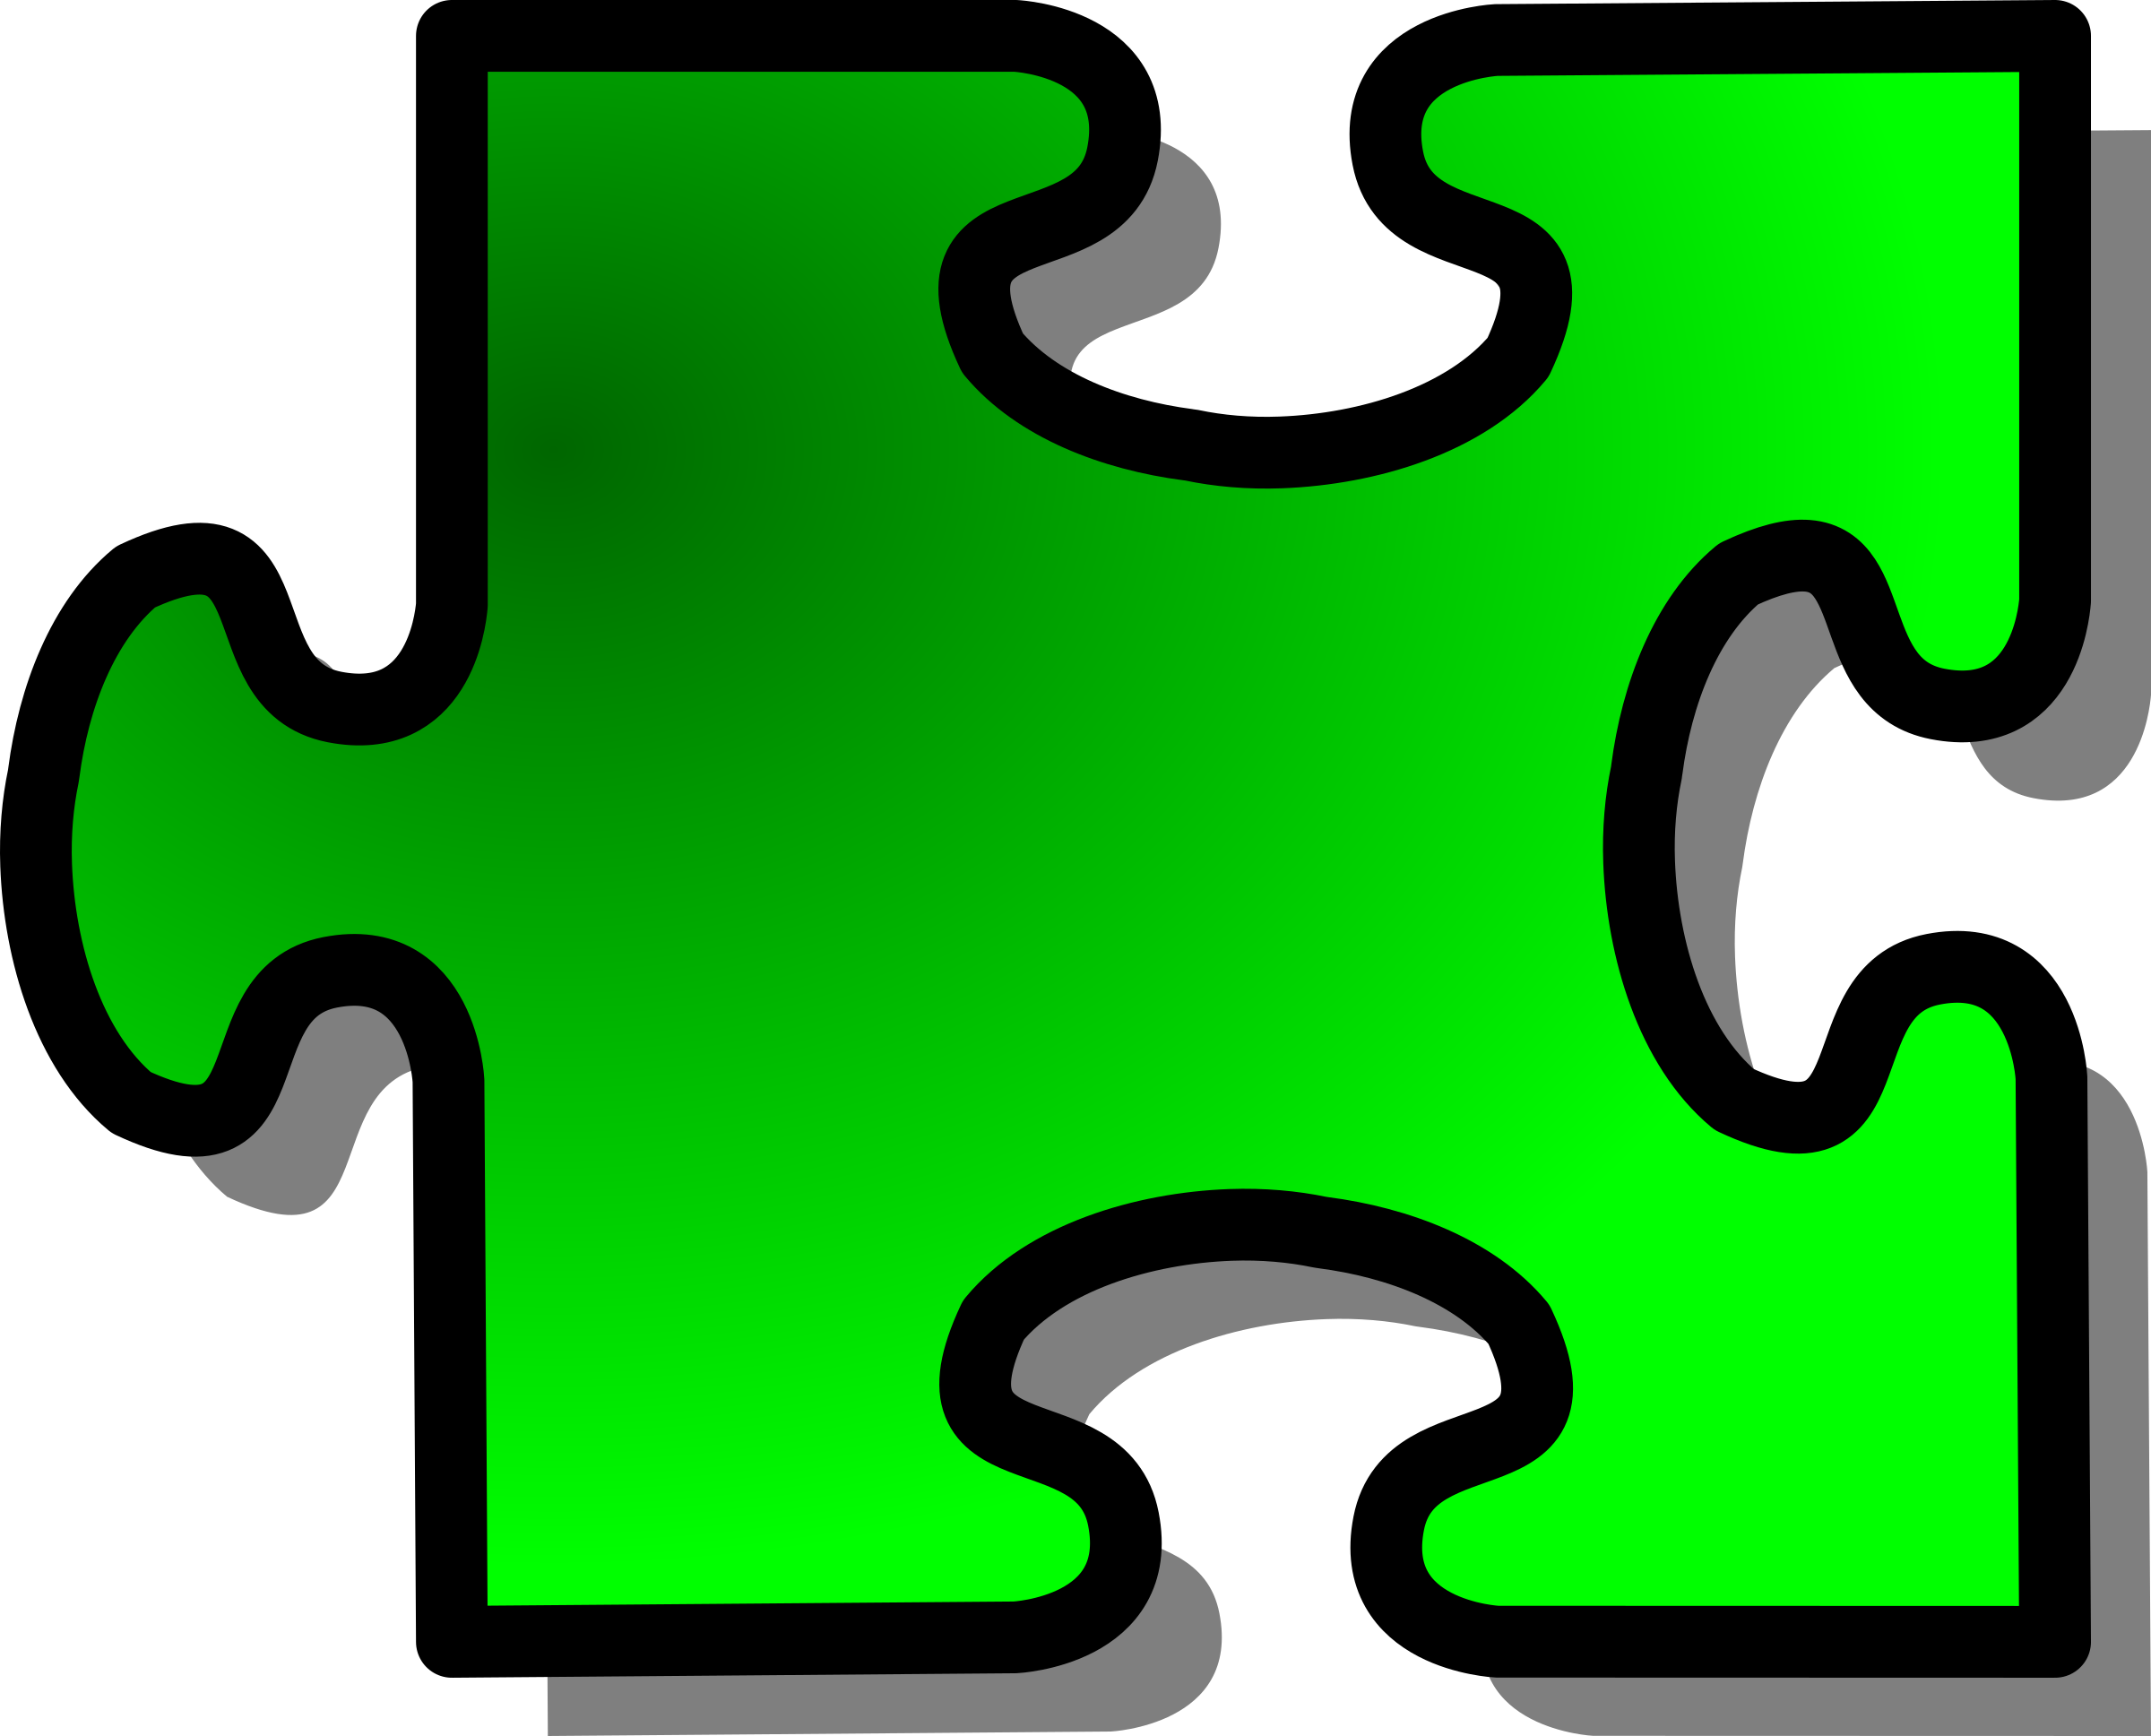 Green Jigsaw piece 16 by nicubunu